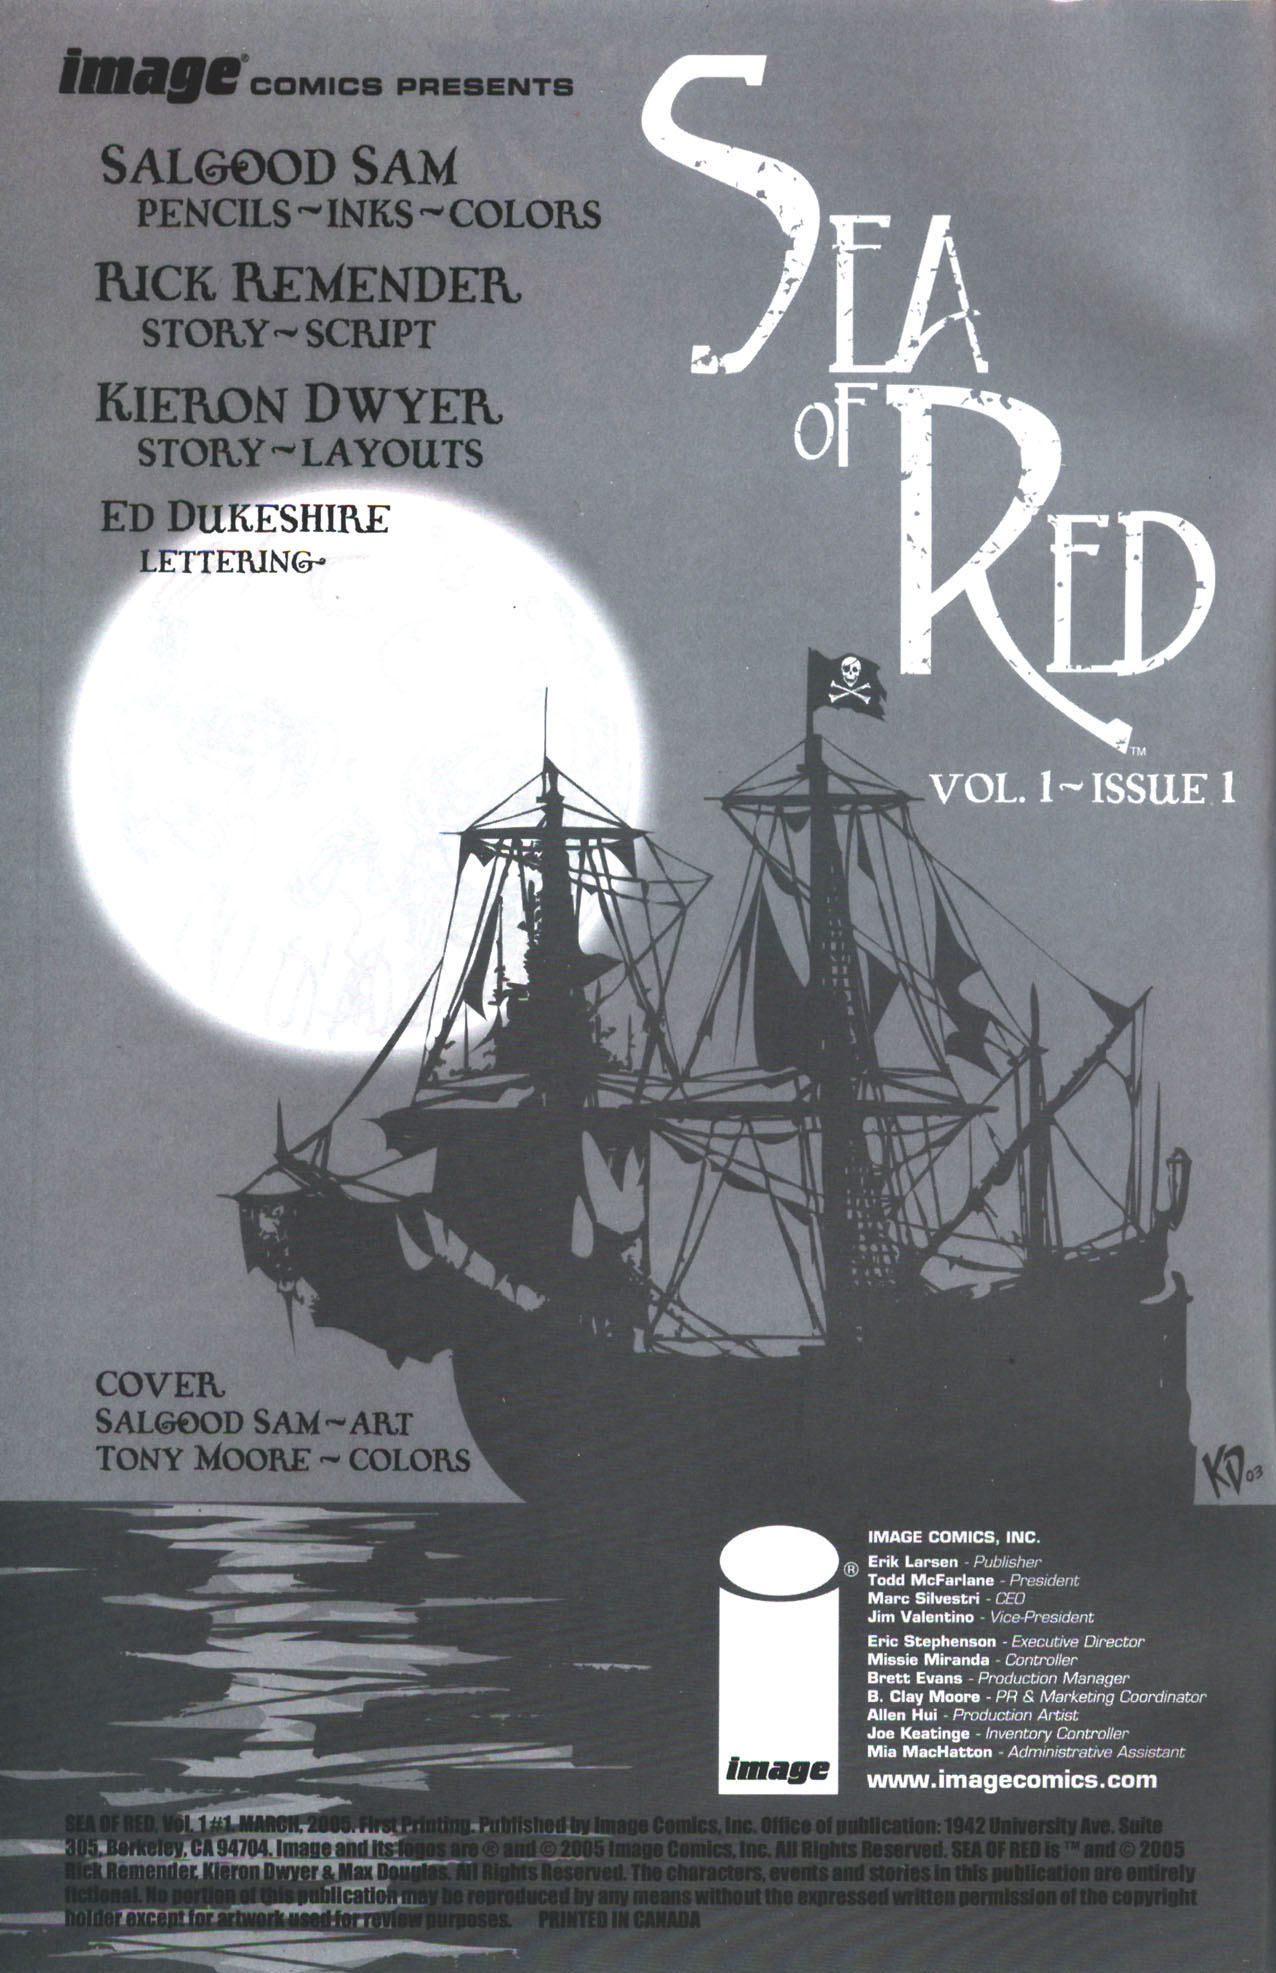 Read online Sea of Red comic -  Issue #1 - 2